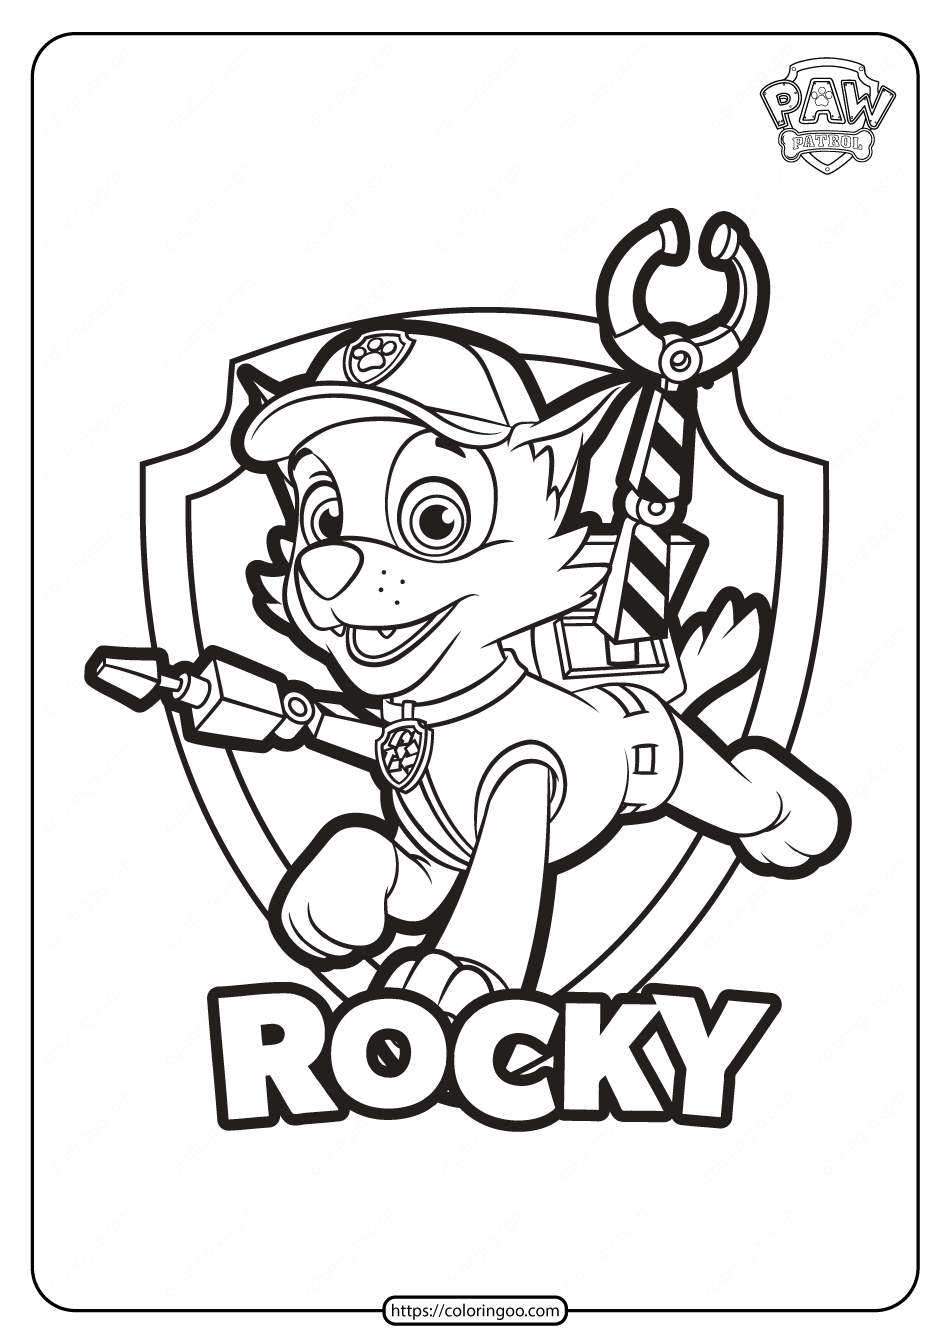 free printable paw patrol rocky coloring pages